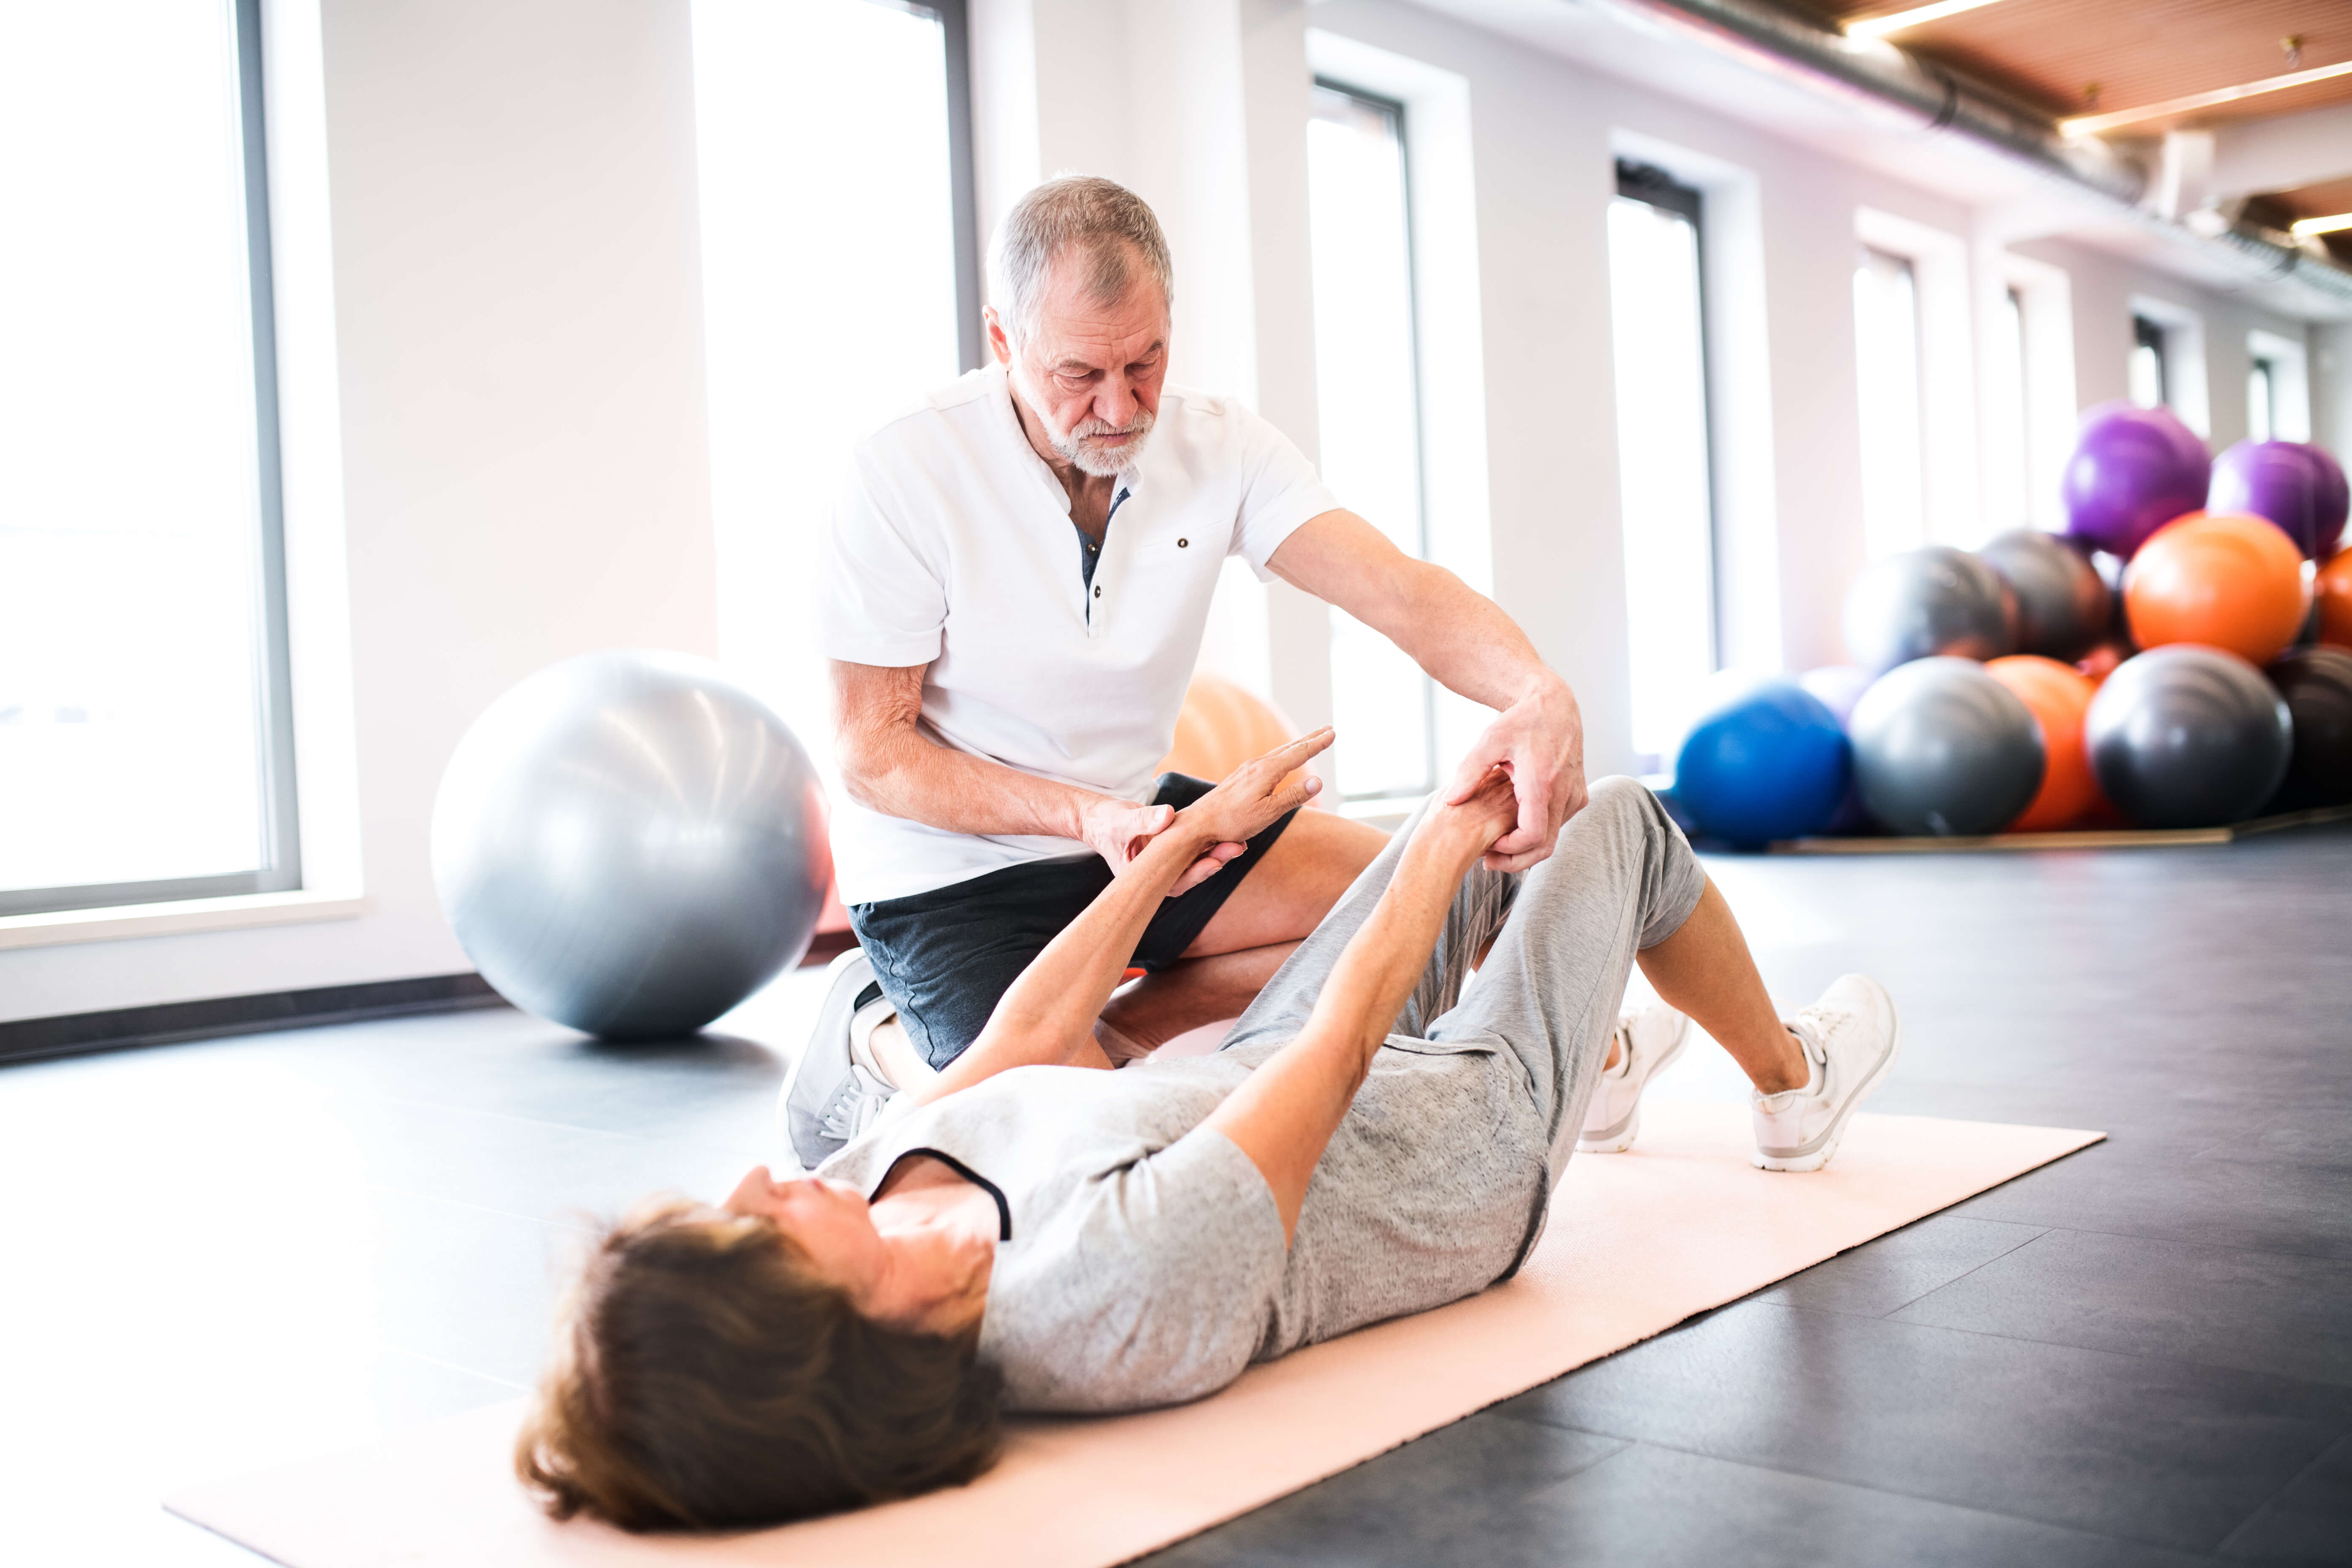 Find post-op rehab from a physical therapist in Mattawan, MI